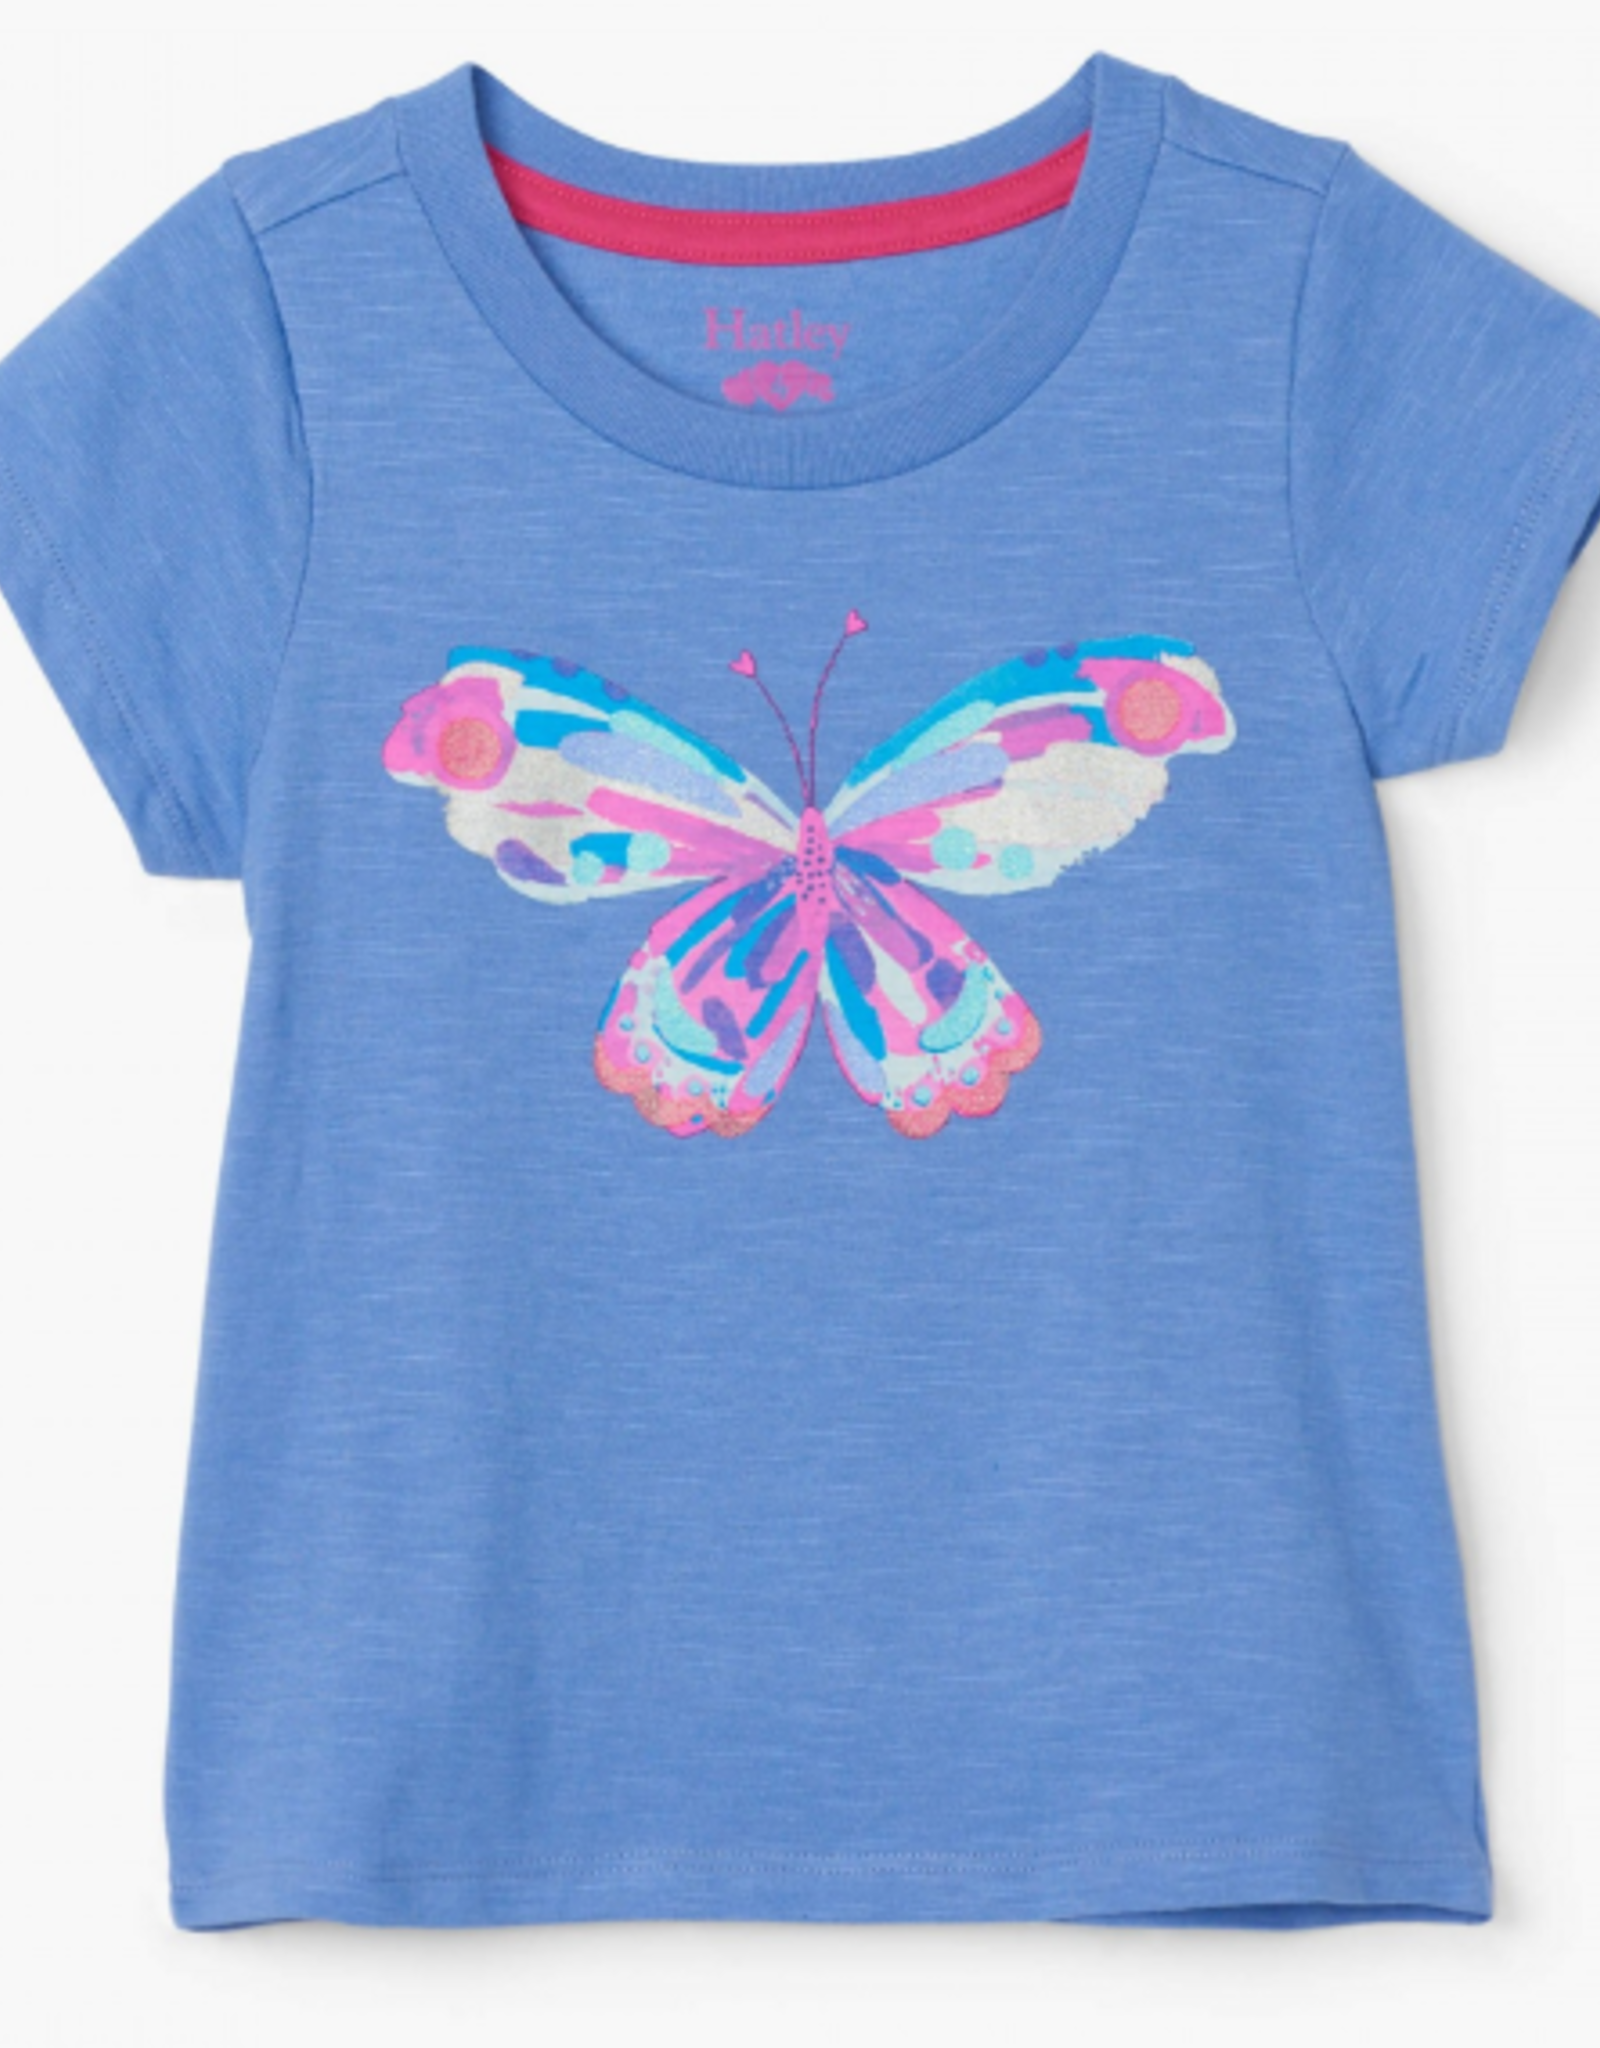 Hatley Graphic Tee